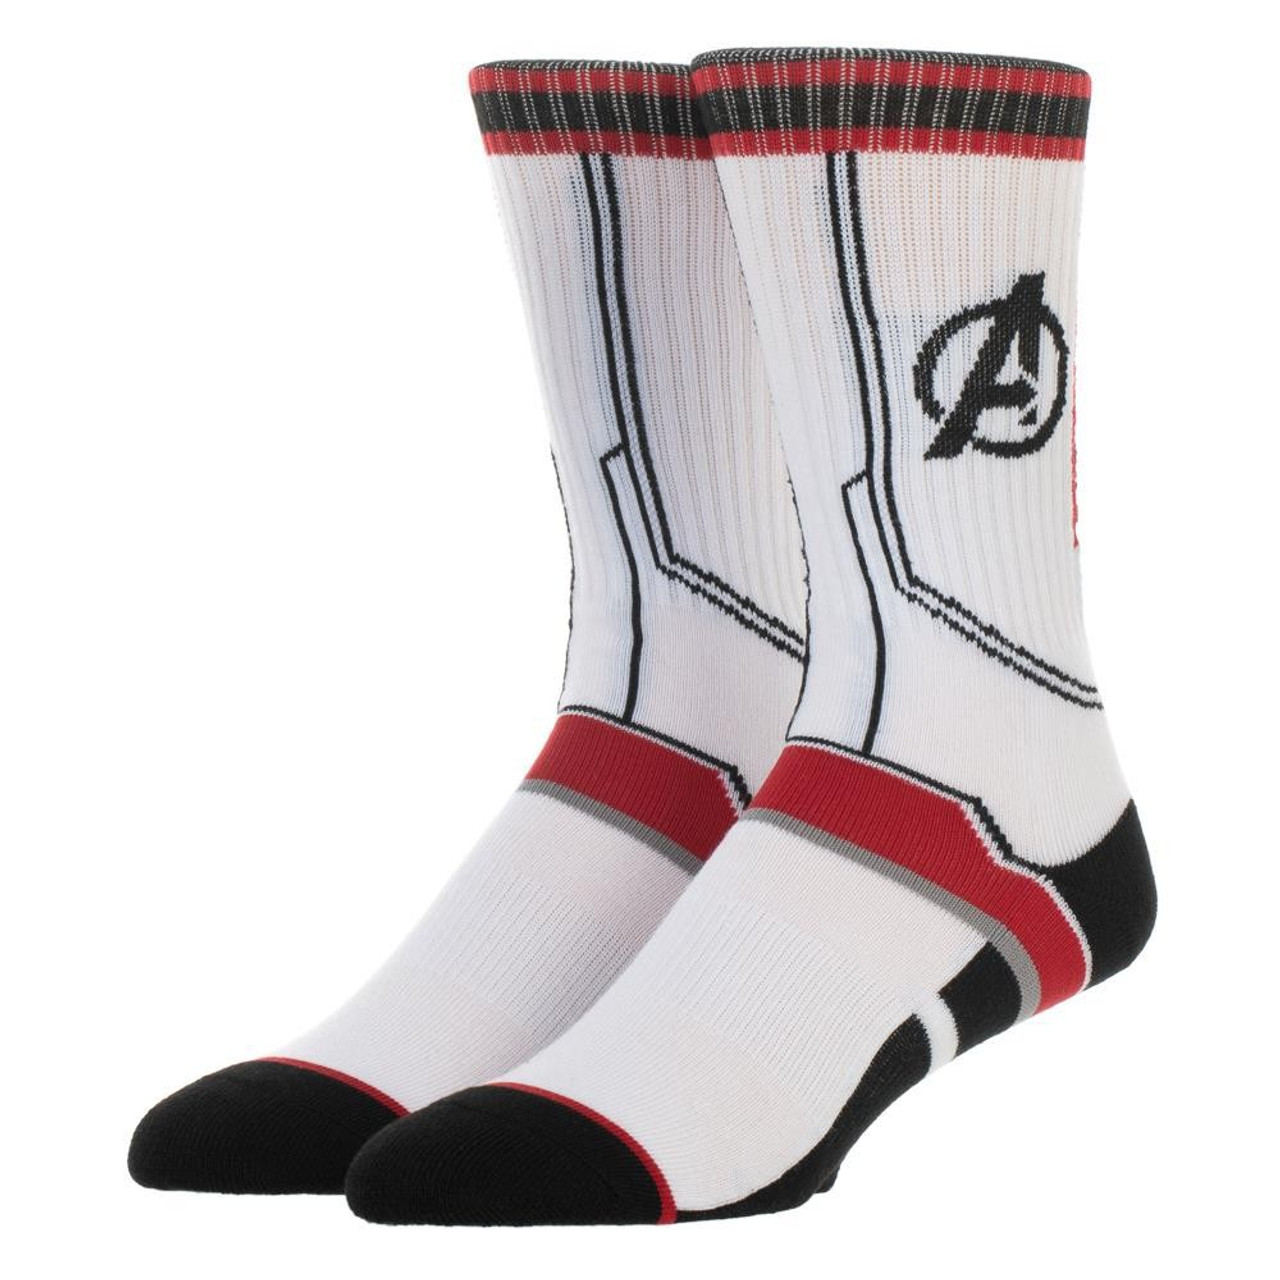 9a34b987b224 Marvel Avengers Endgame Suit Up Athletic Mens Crew Socks Bioworld LD -  ToyWiz